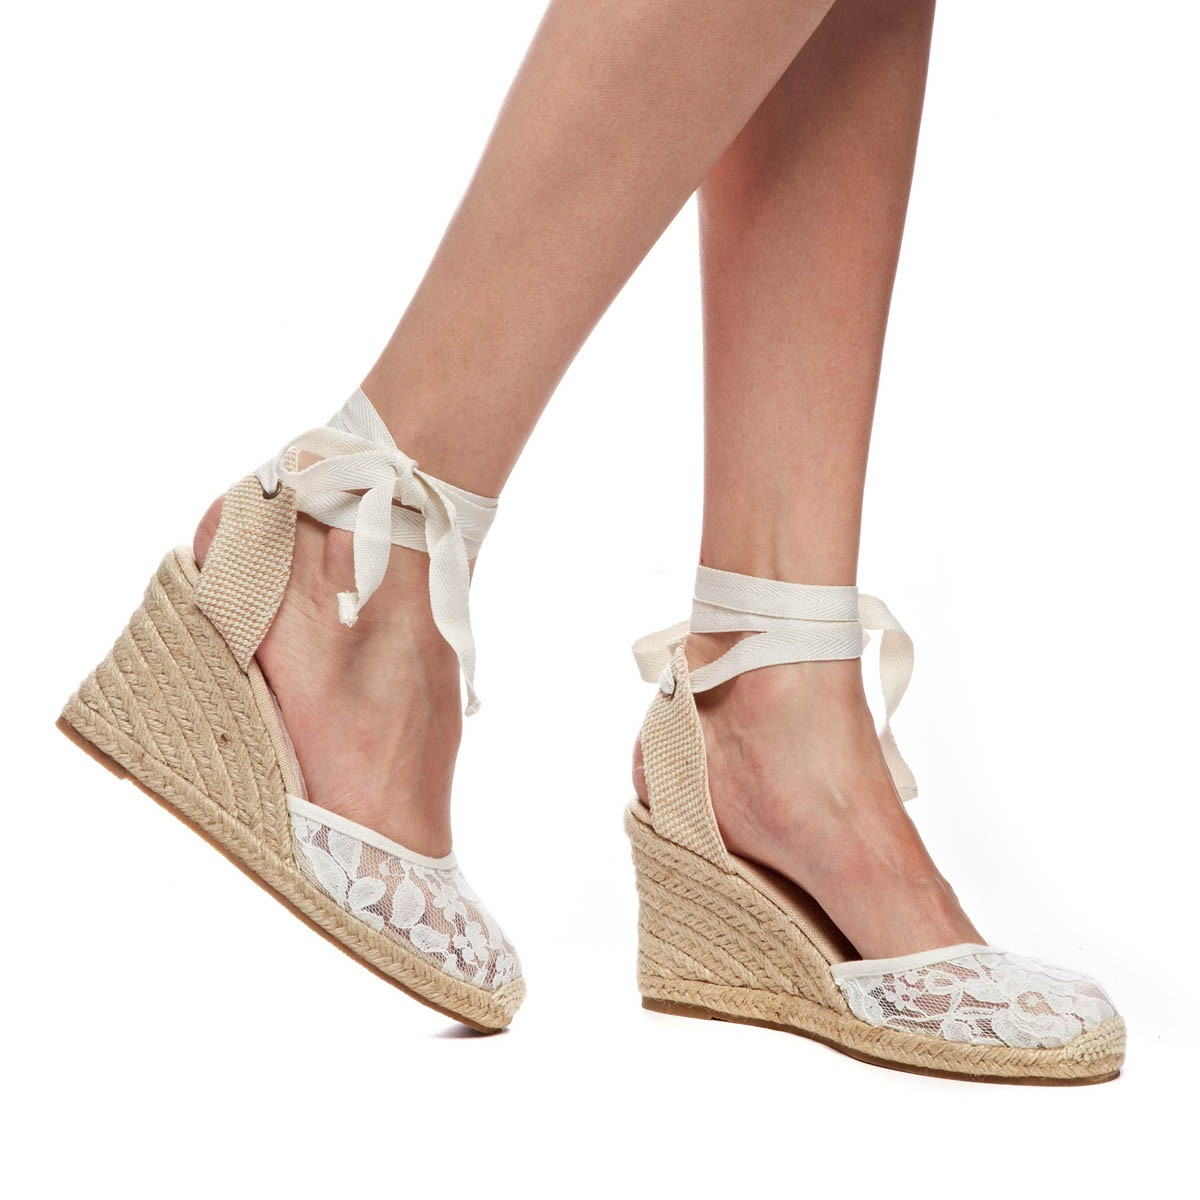 5545a790f4e5 Soludos Chantilly Lace Tall Wedge in Natural - Lyst